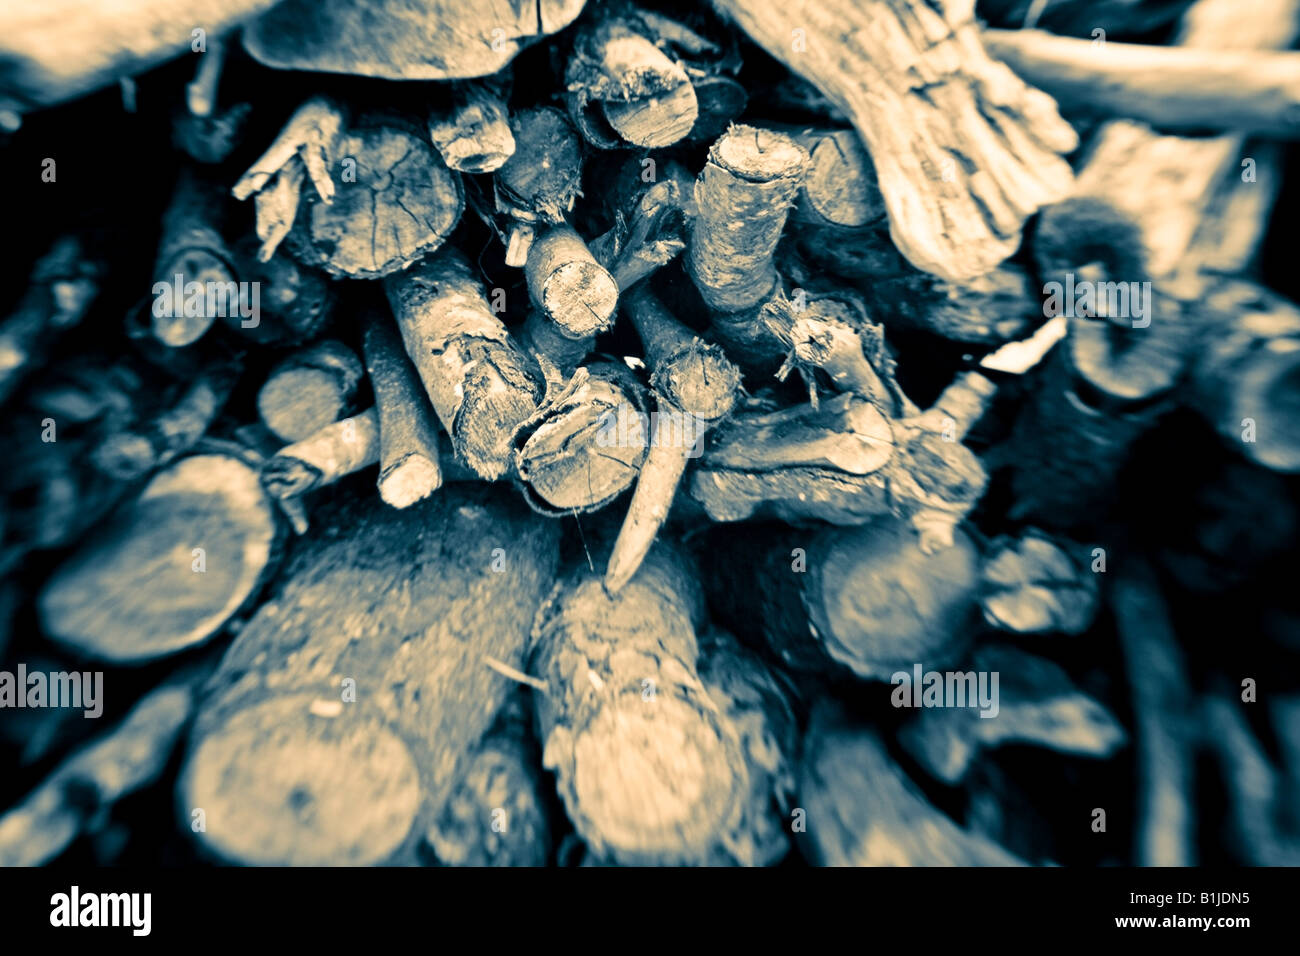 Sepia tones close up of a pile of driftwood stacked for burning USA - Stock Image